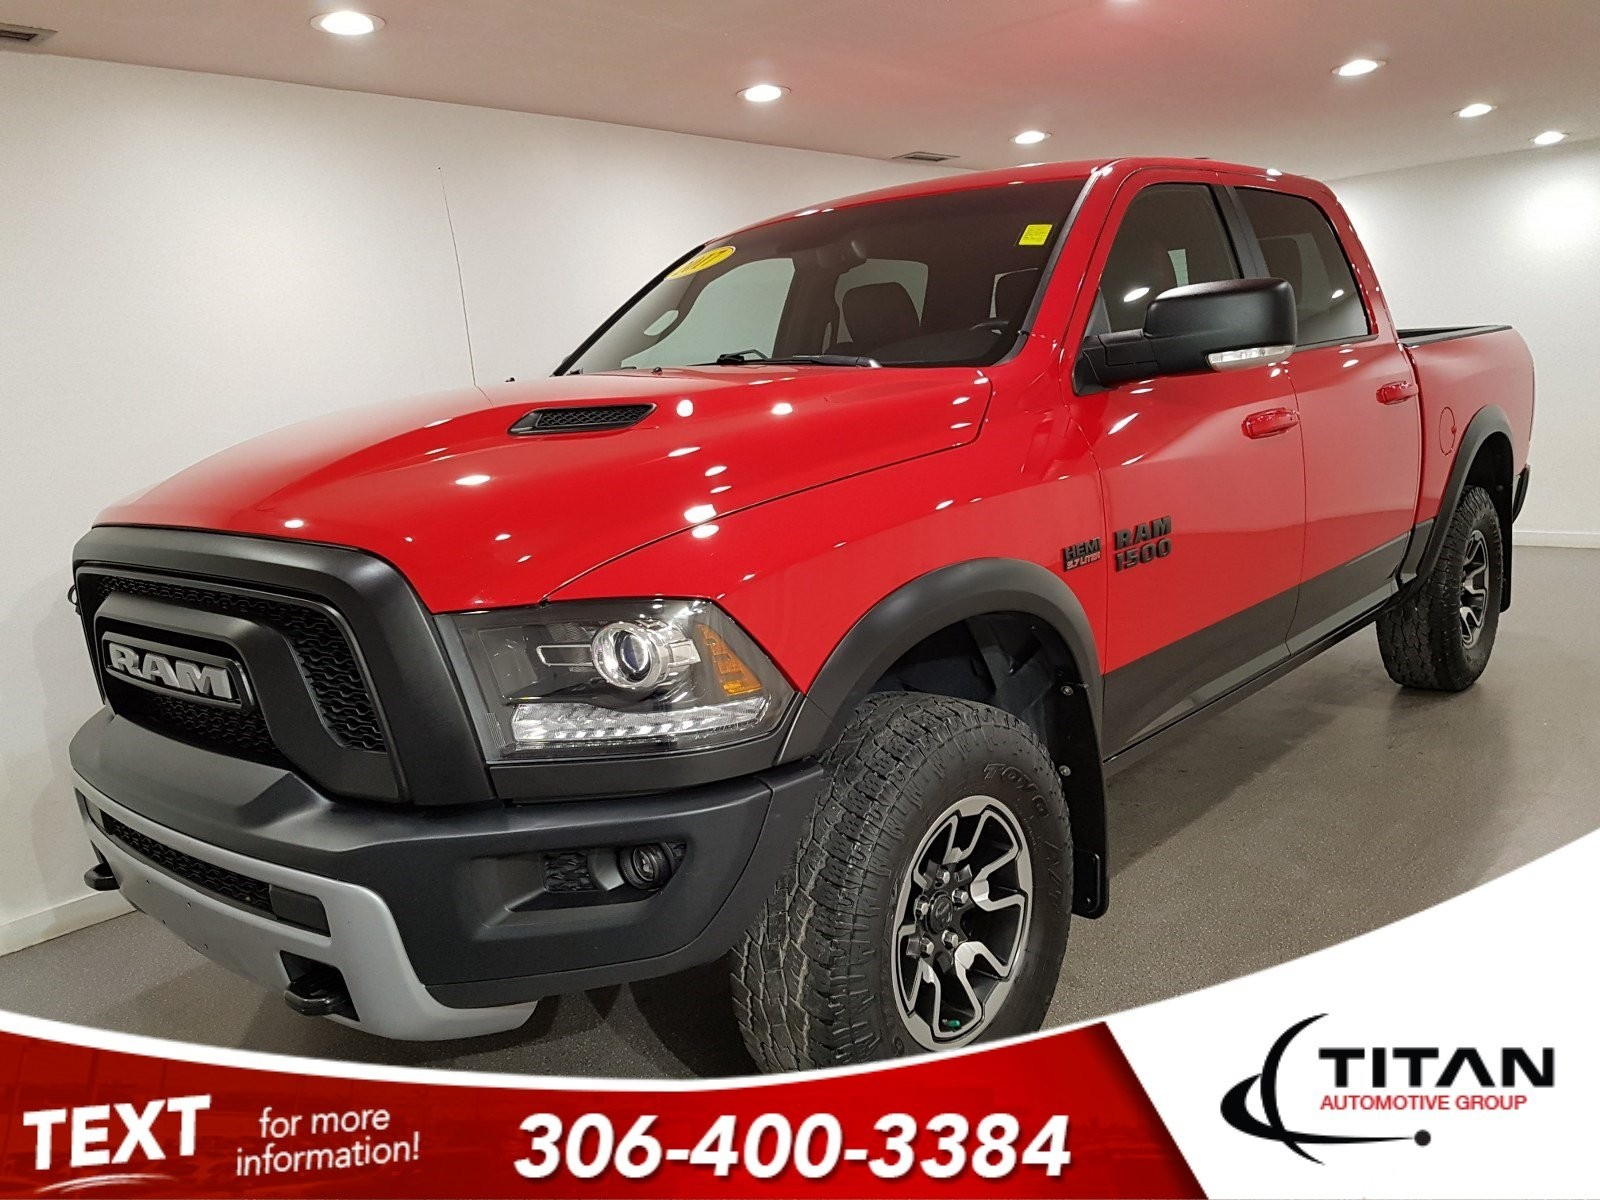 Tailight Wiring for 2016 Ram Rebel for Reverse 2017 Ram 1500 Rebel Crew Cab Heated Seats Sunroof Of Tailight Wiring for 2016 Ram Rebel for Reverse